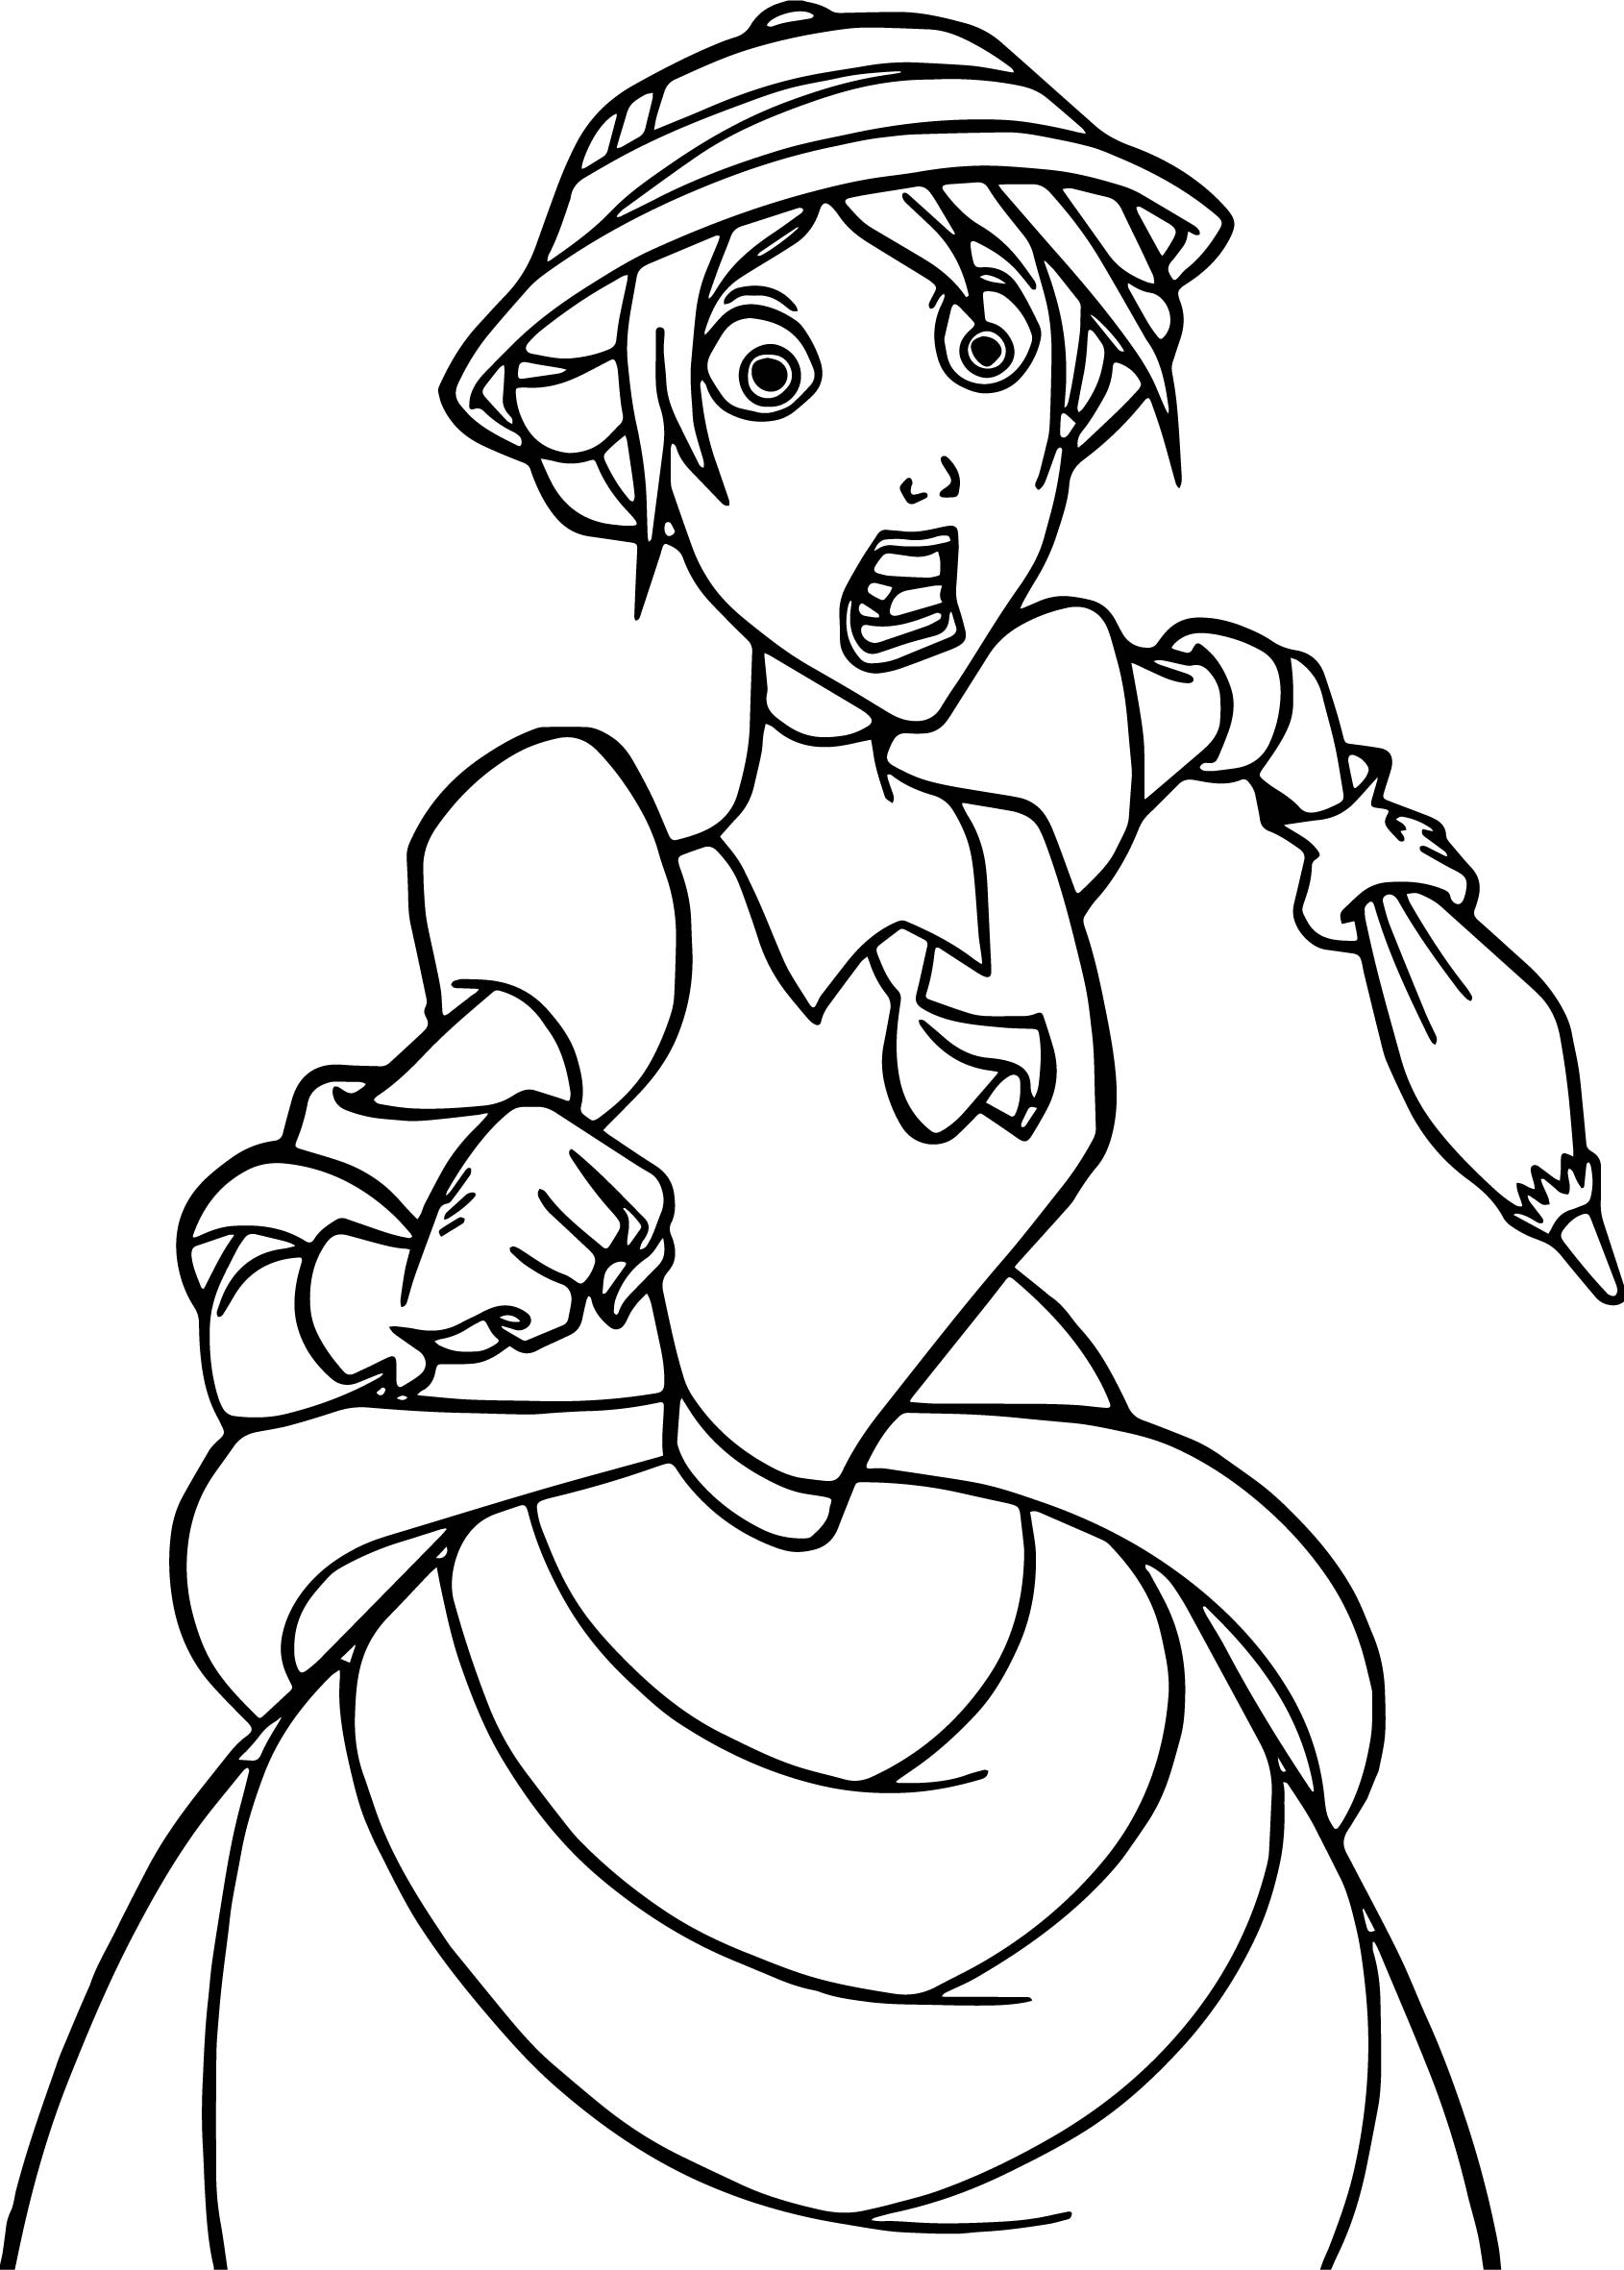 Jane Frightened Coloring Page